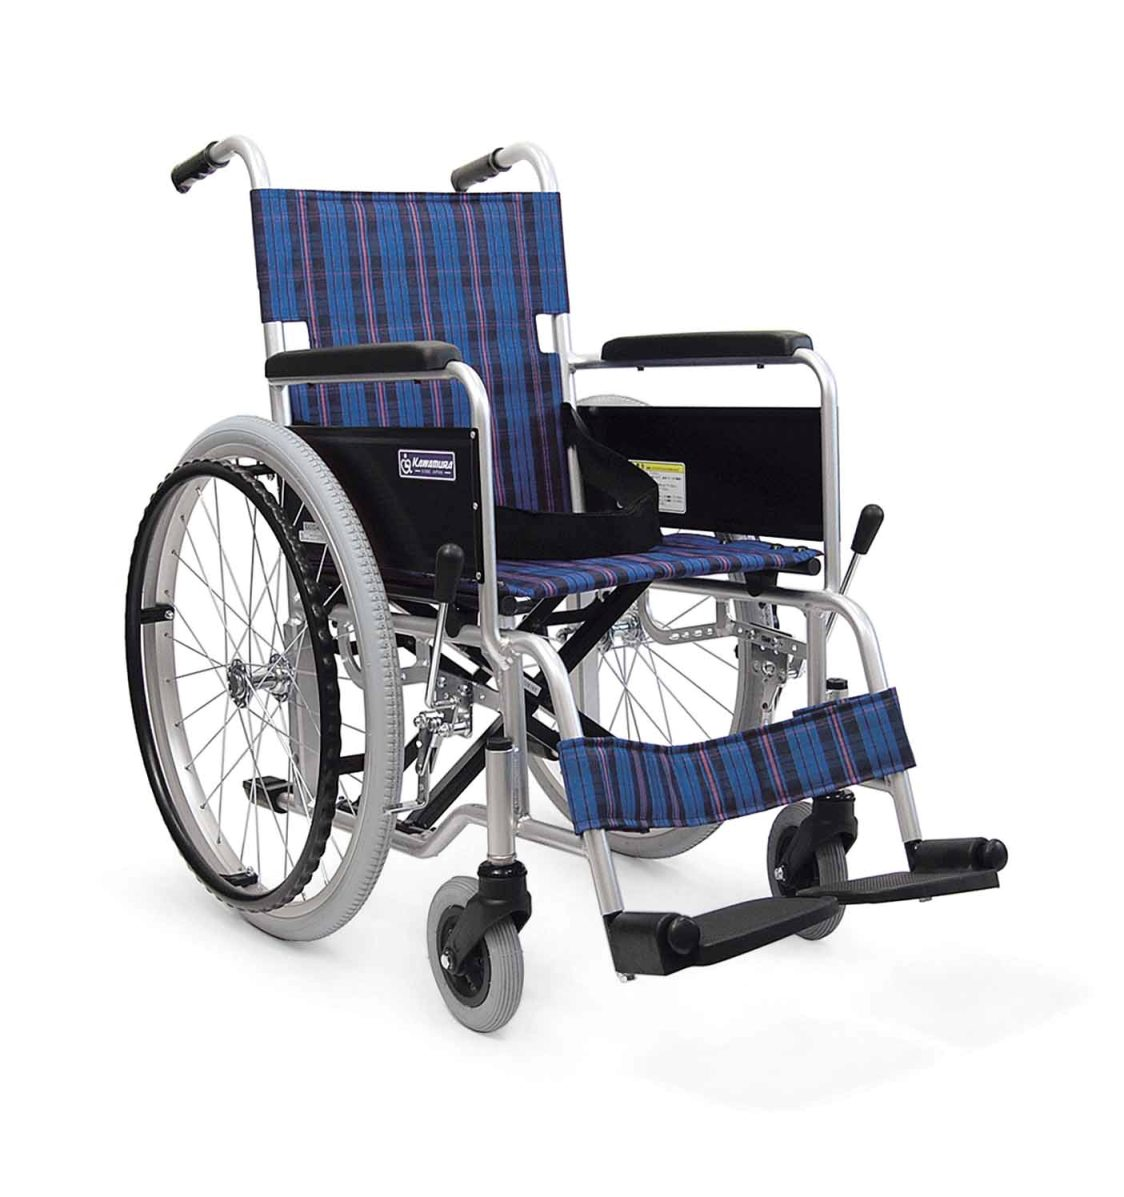 Bed Wheelchair Kawamura Cycles Ka102 40 42 Aluminum Standard Wheelchair In Bed 60 Non Cod Manufacturer Direct